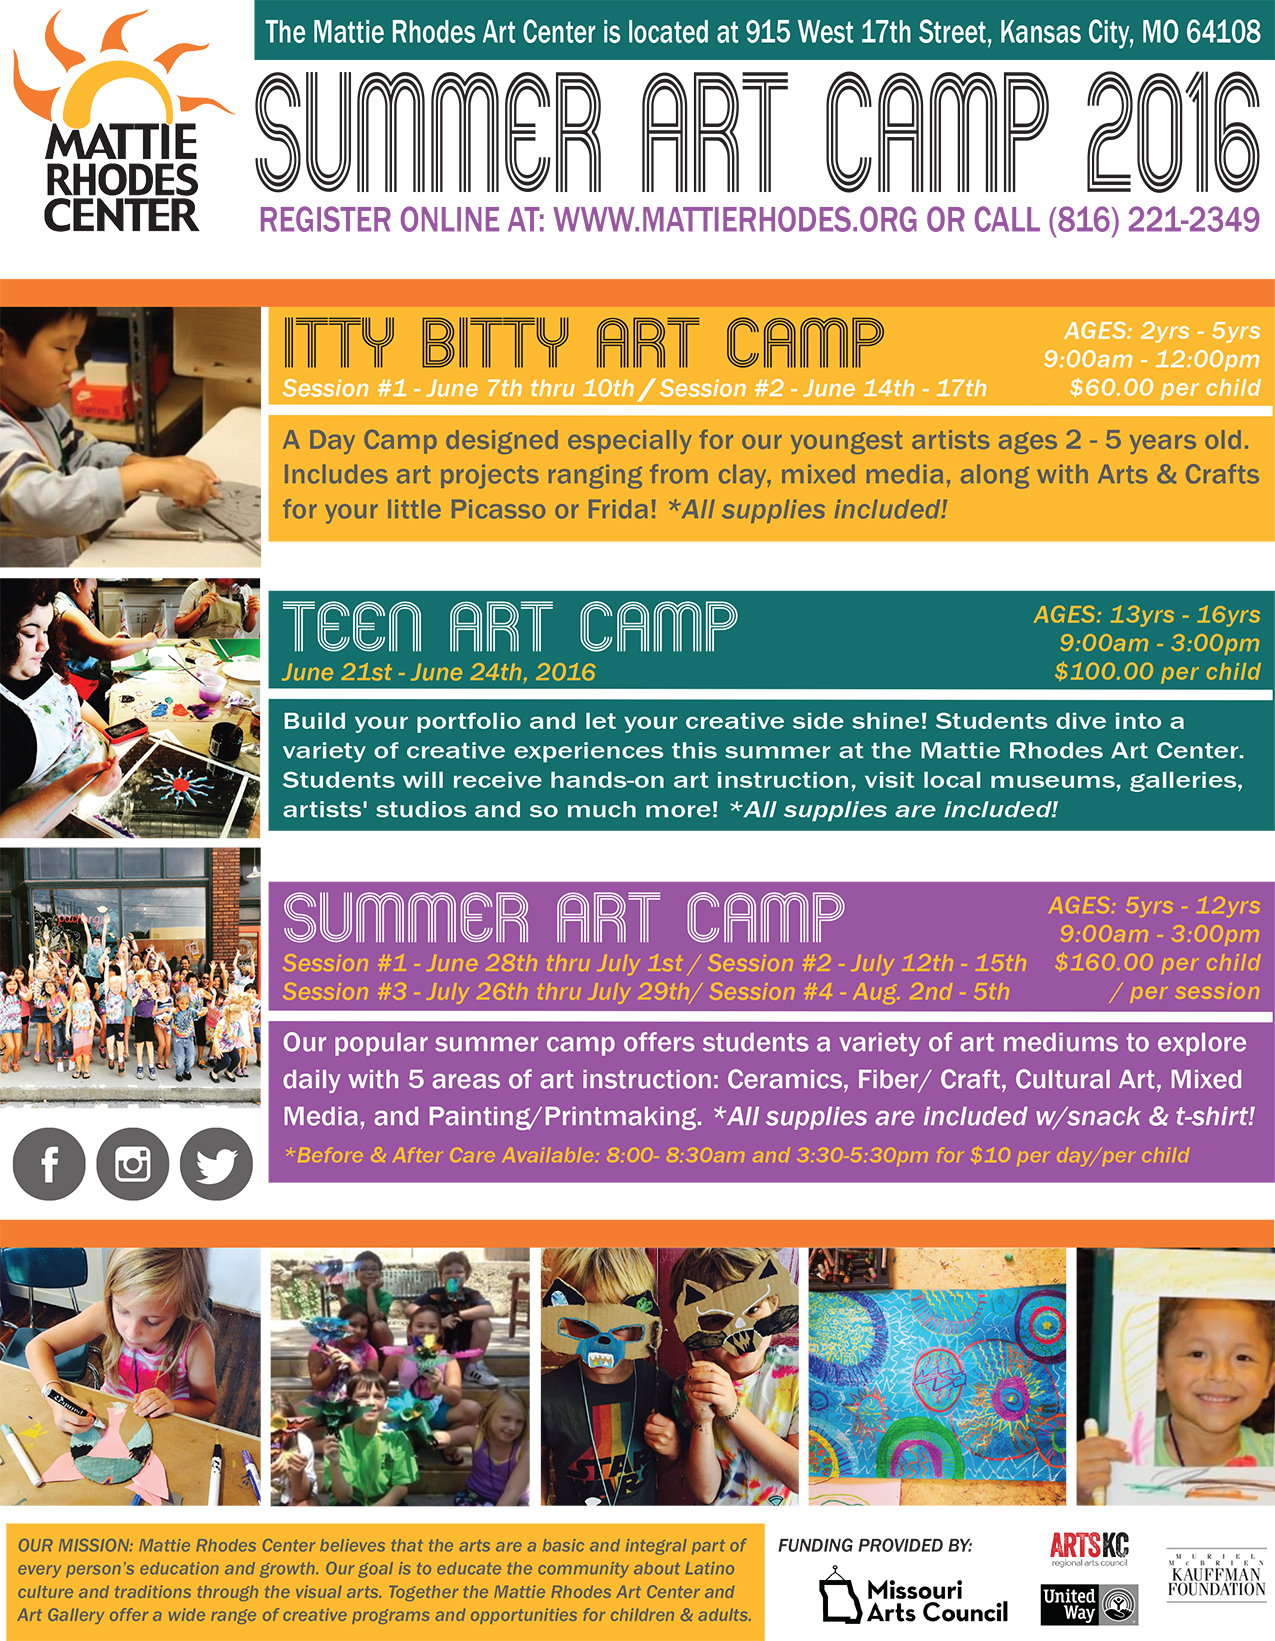 Summer Art Camp Flyer 2016-REVISED 04052016